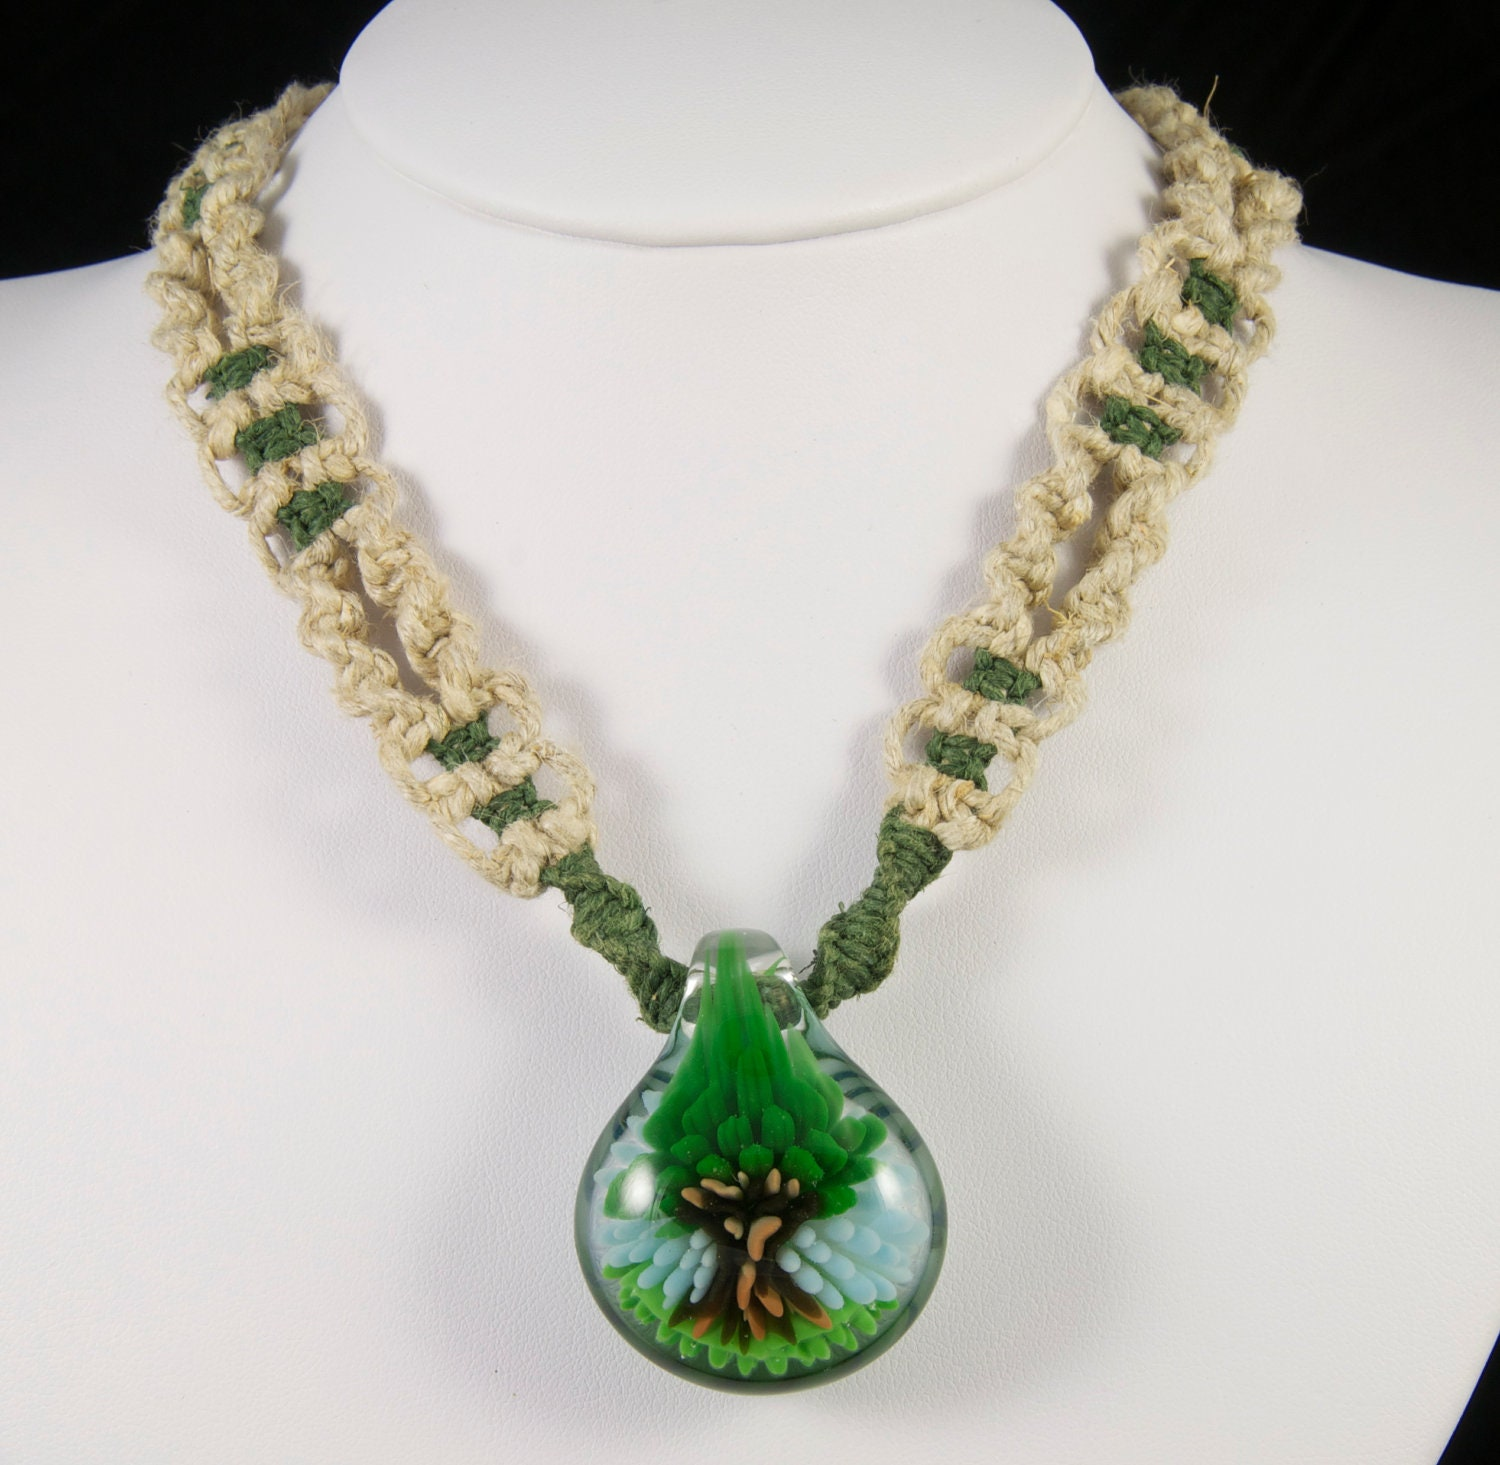 Natural and Green Hemp Necklace w/ Glass Pendant - Jewelry - Necklace - FREE Shipping (US Only)